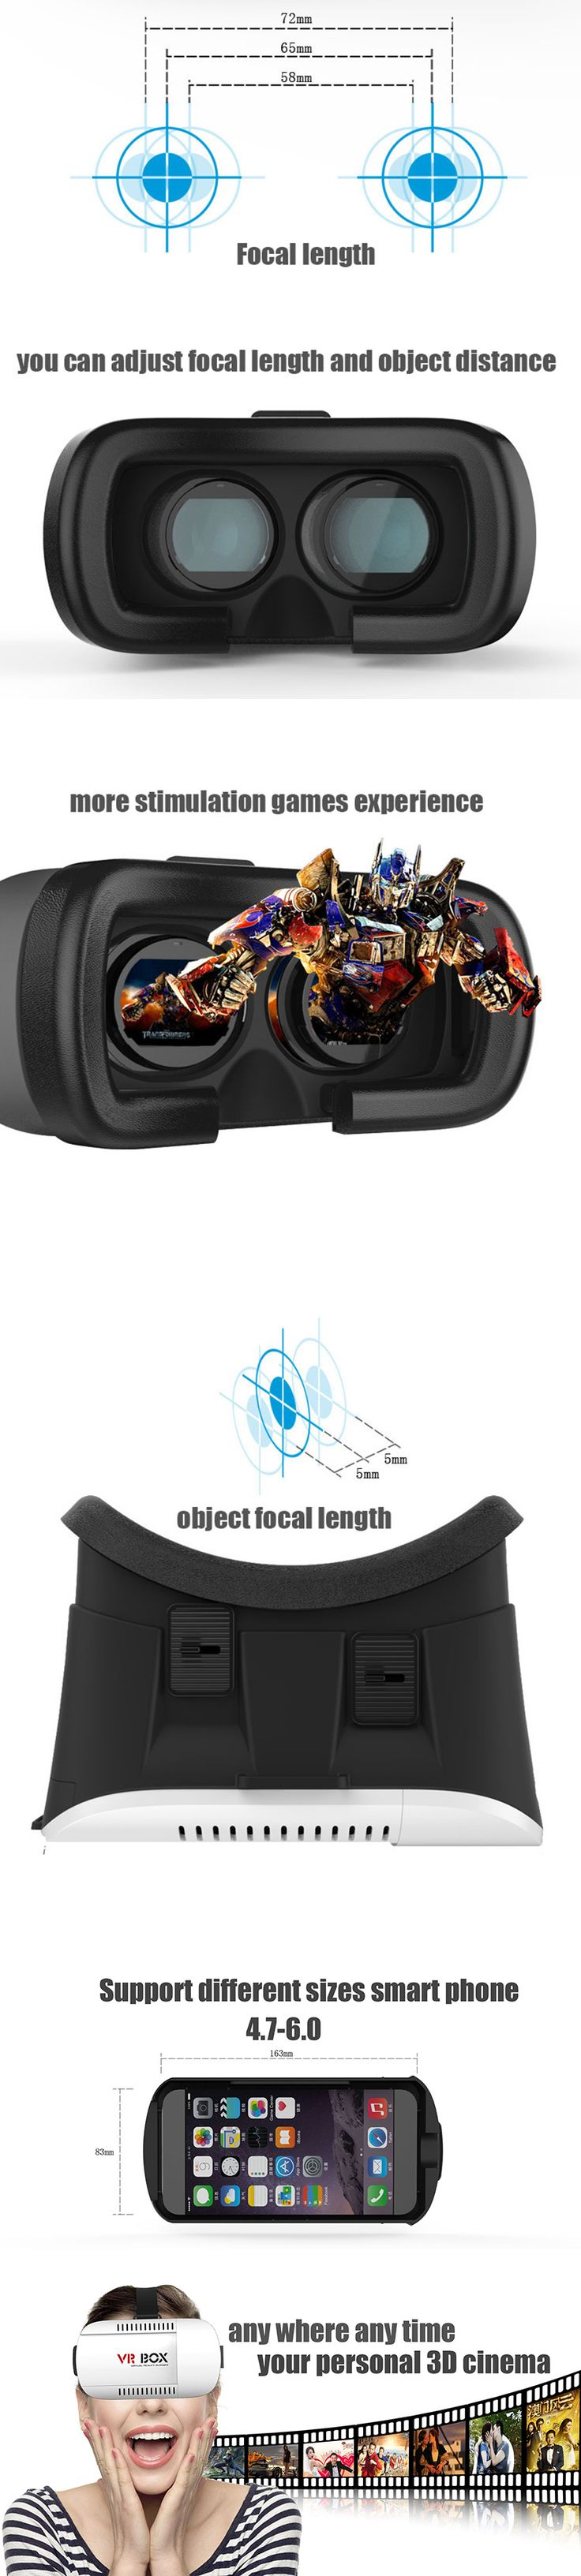 """VR BUCINUM VR BOX 1.0 VR 3D Glasses Support 4.7-6.0"""" Smartphones for Samsung Galaxy S8 etc Virtual Reality Glasses 3D VR Games   Read more at Electronic Pro Market : http://www.etproma.com/products/vr-bucinum-vr-box-1-0-vr-3d-glasses-support-4-7-6-0-smartphones-for-samsung-galaxy-s8-etc-virtual-reality-glasses-3d-vr-games/   VR BUCINUM VR BOX 1.0 VR 3D Glasses Support 4.7-6.0″ Smartphones for Samsung Galaxy S8 etc Virtual Reality Glasses 3D VR Games  Product Descrip"""